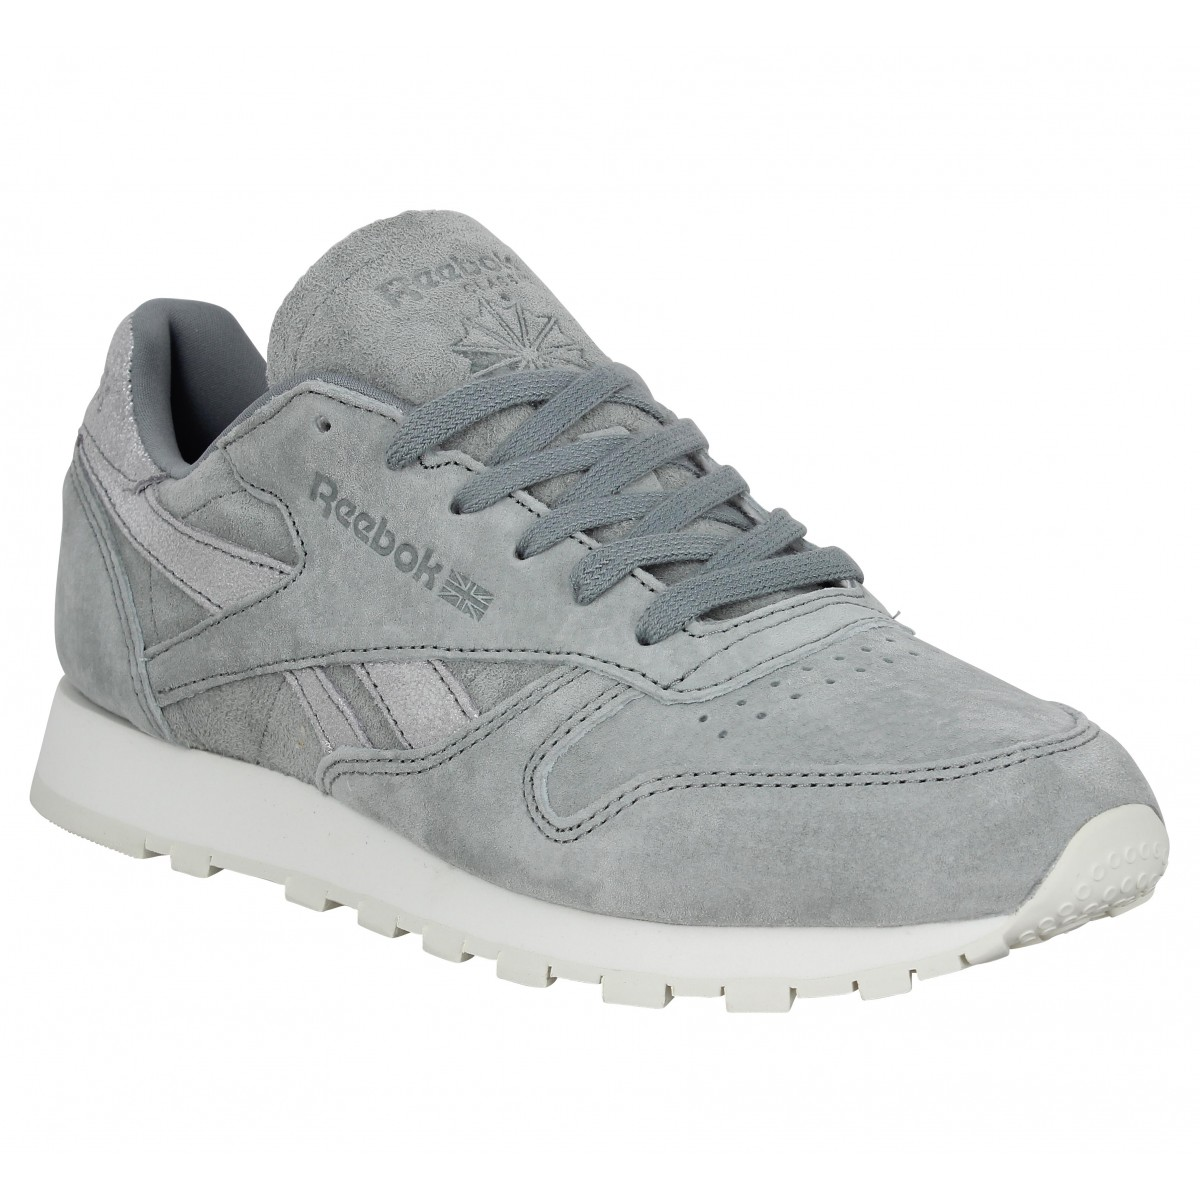 00c9d163d323d Baskets REEBOK Classic Leather Shimmer velours Femme Gris